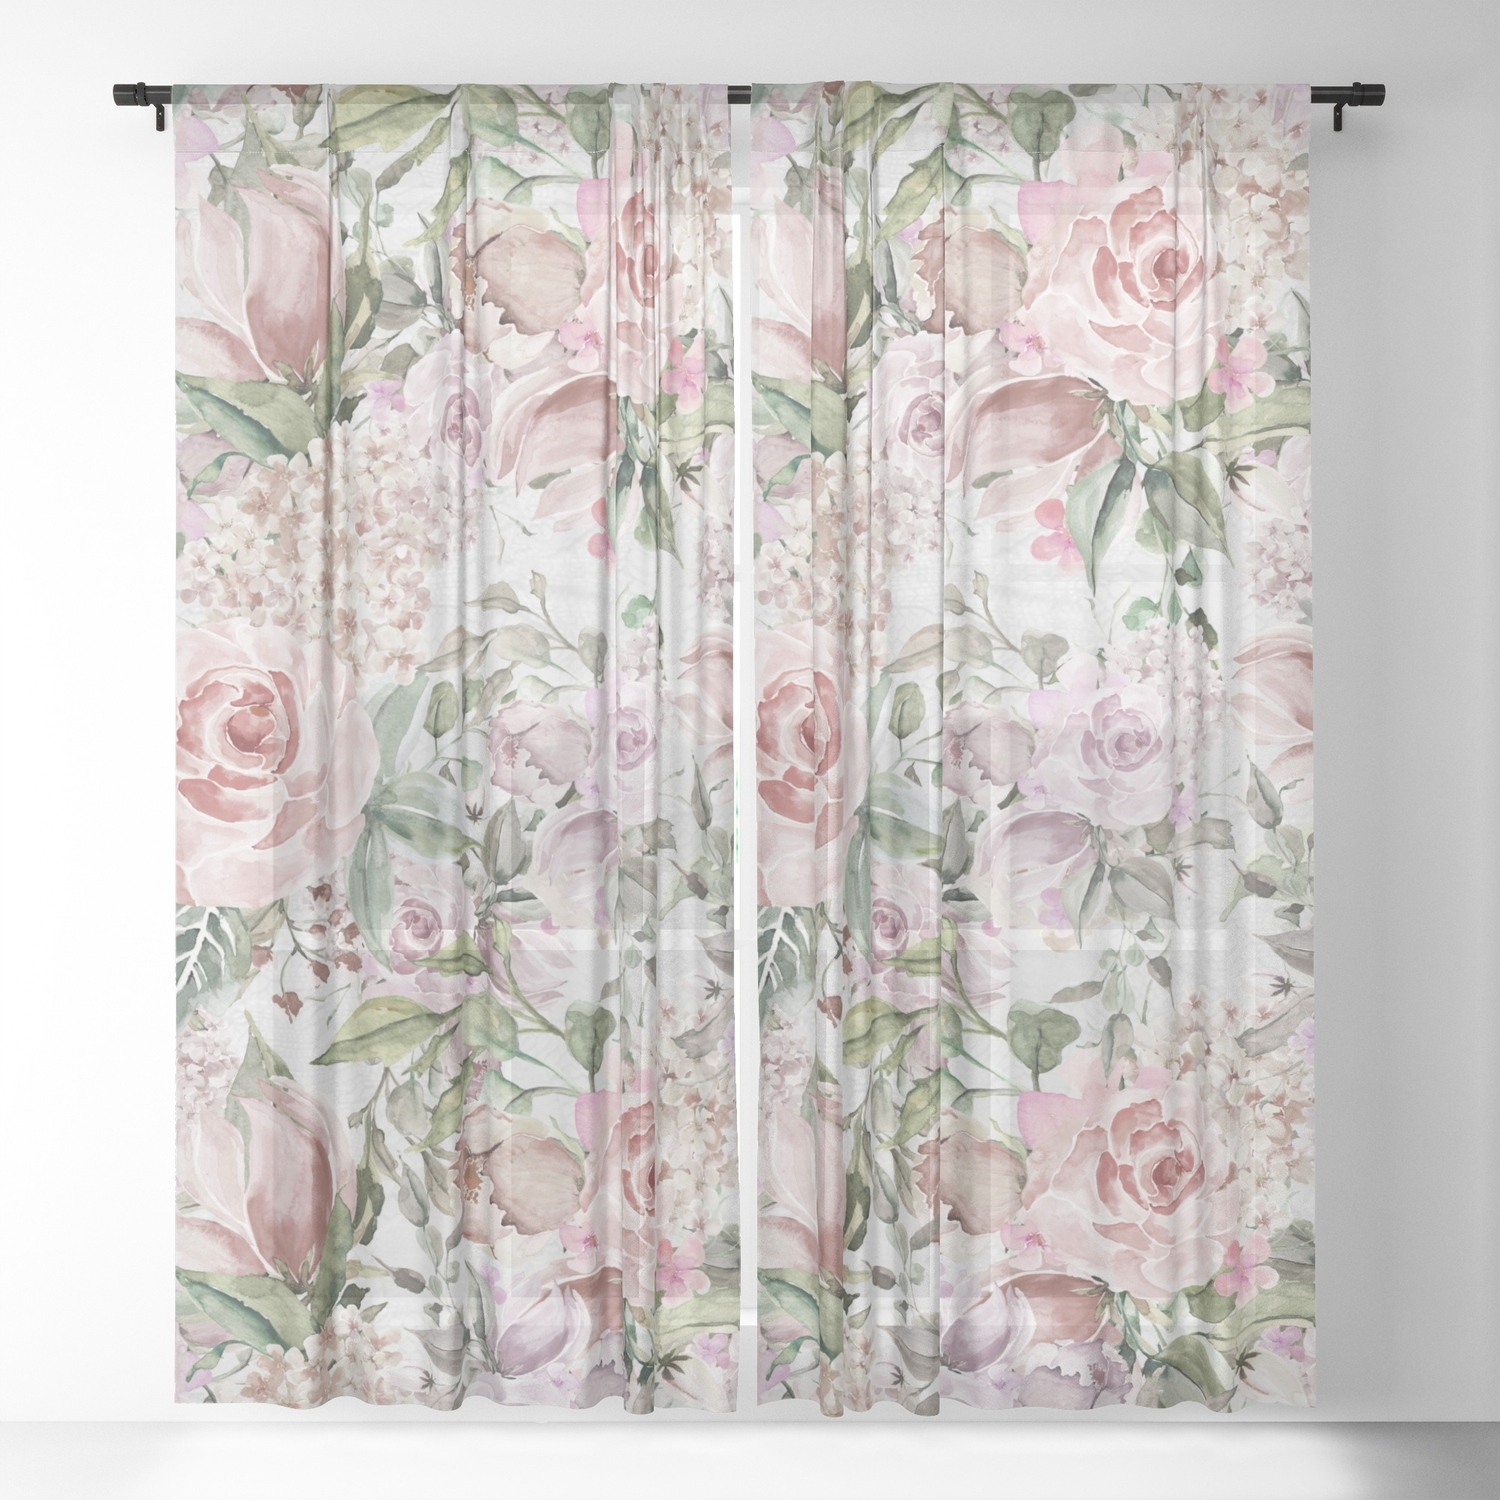 blush pink lilac white lace country floral sheer curtain throughout Five Ways To Dress Your Windows With Lace Curtains